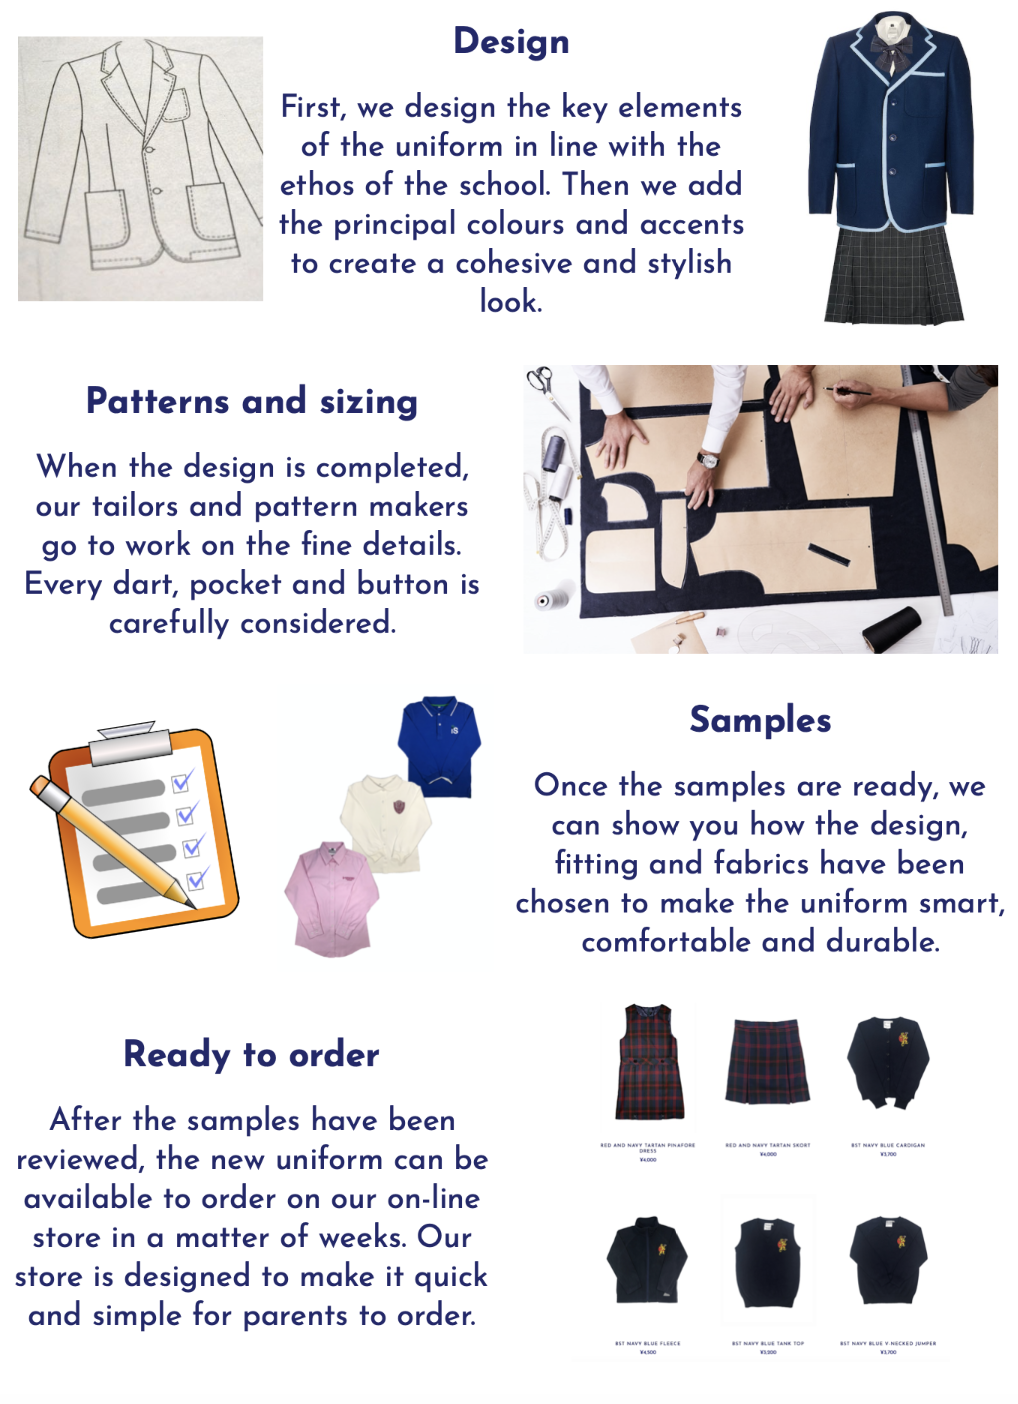 bespoke-uniform-5.png